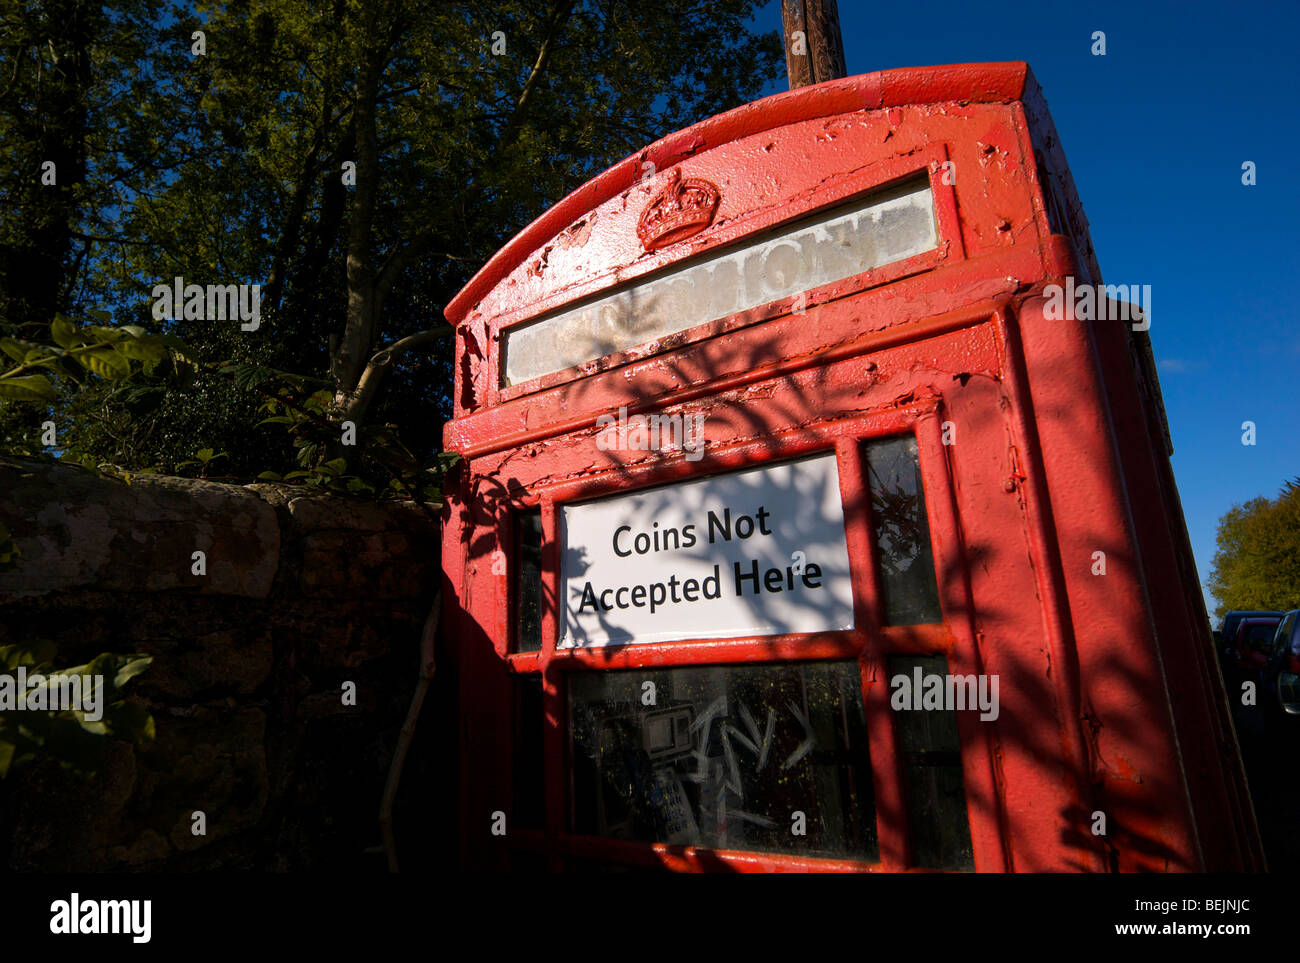 An old style telephone kiosk that no longer accepts coins as payment - Stock Image